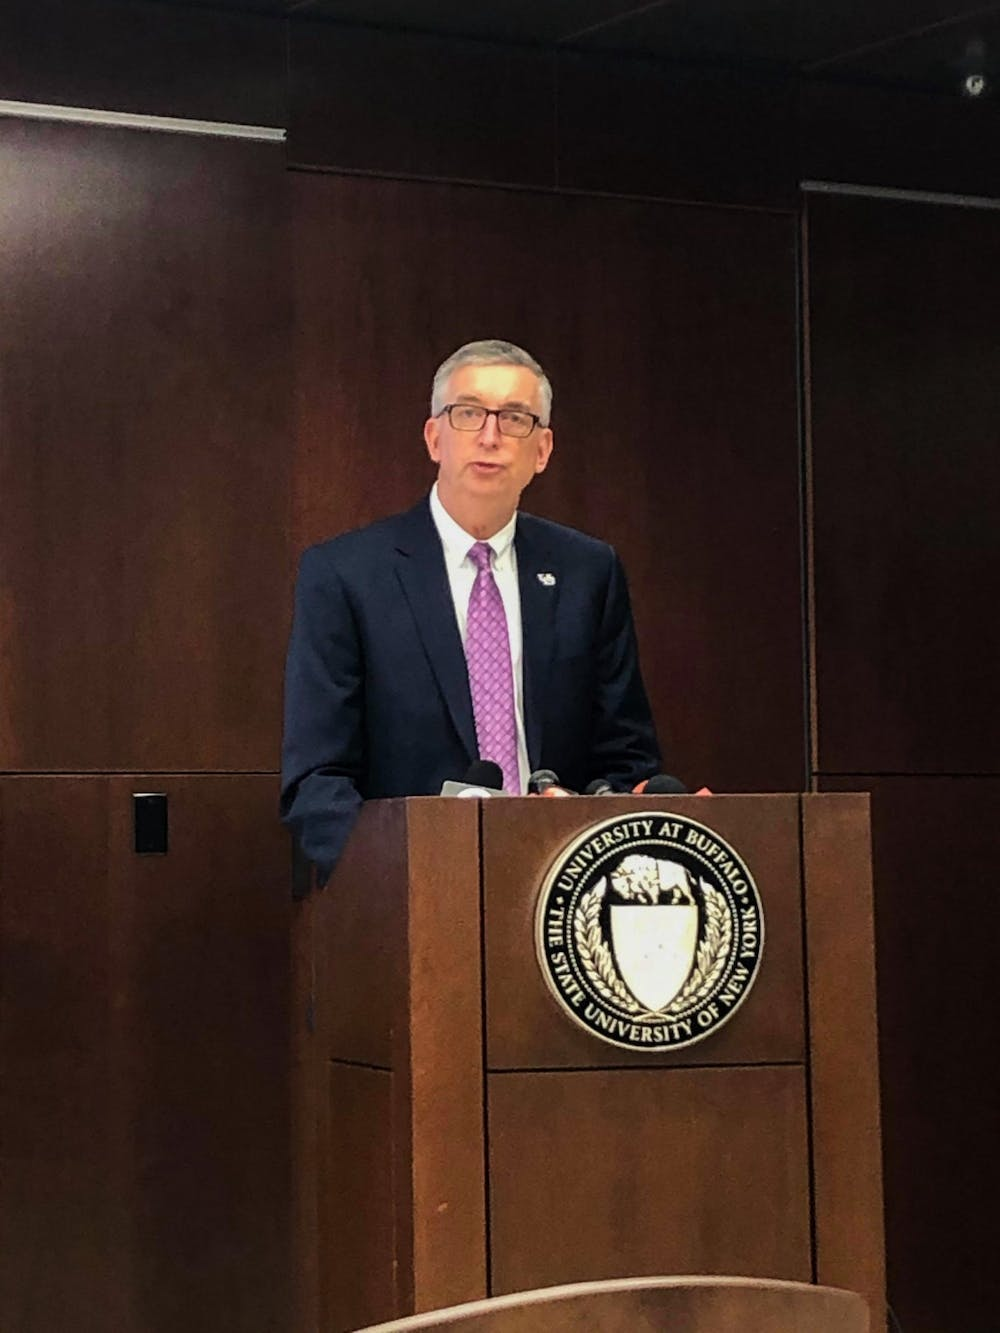 <p>Provost A. Scott Weber discussing UB's coronavirus plans at a press conference Wednesday.</p>